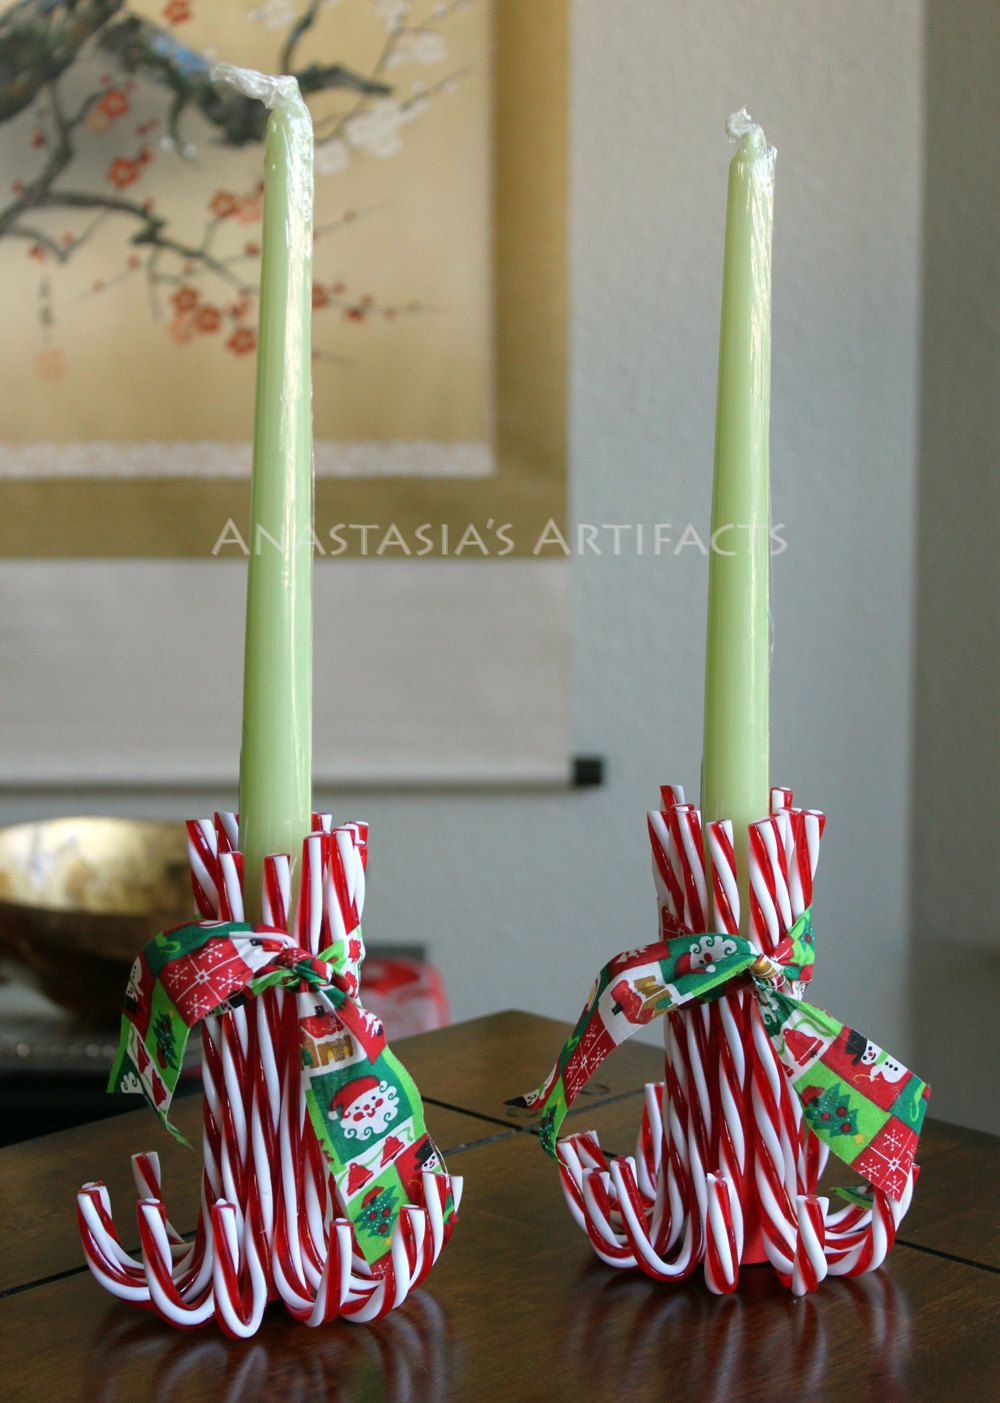 Pair Reusable Candy Cane Candle Holders by AnastasiasArtifacts, $15.00